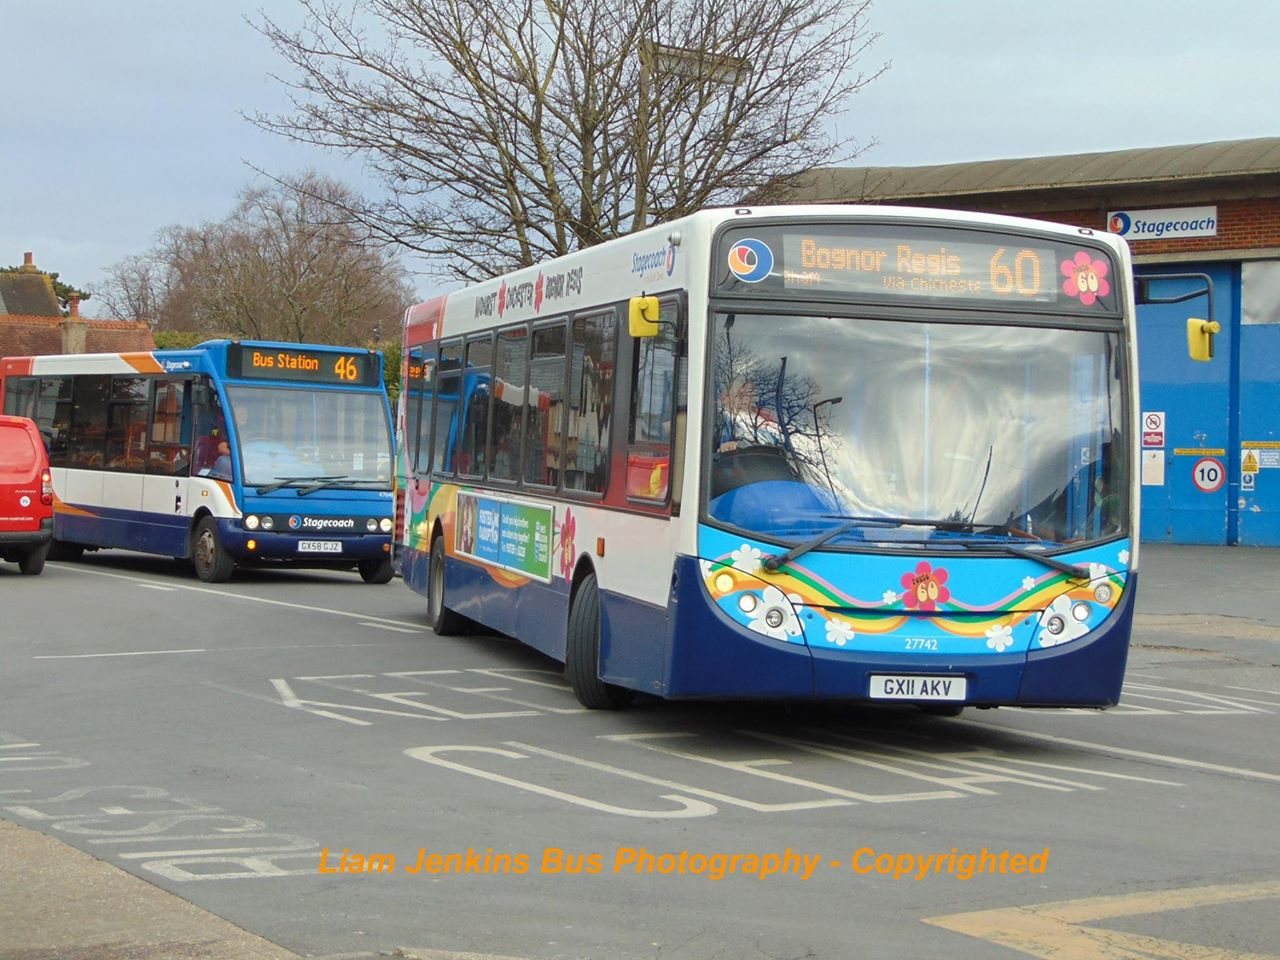 This Bus Has Now Reportedly Been Painted Into The New Coastliner 700 Livery But Not Fully